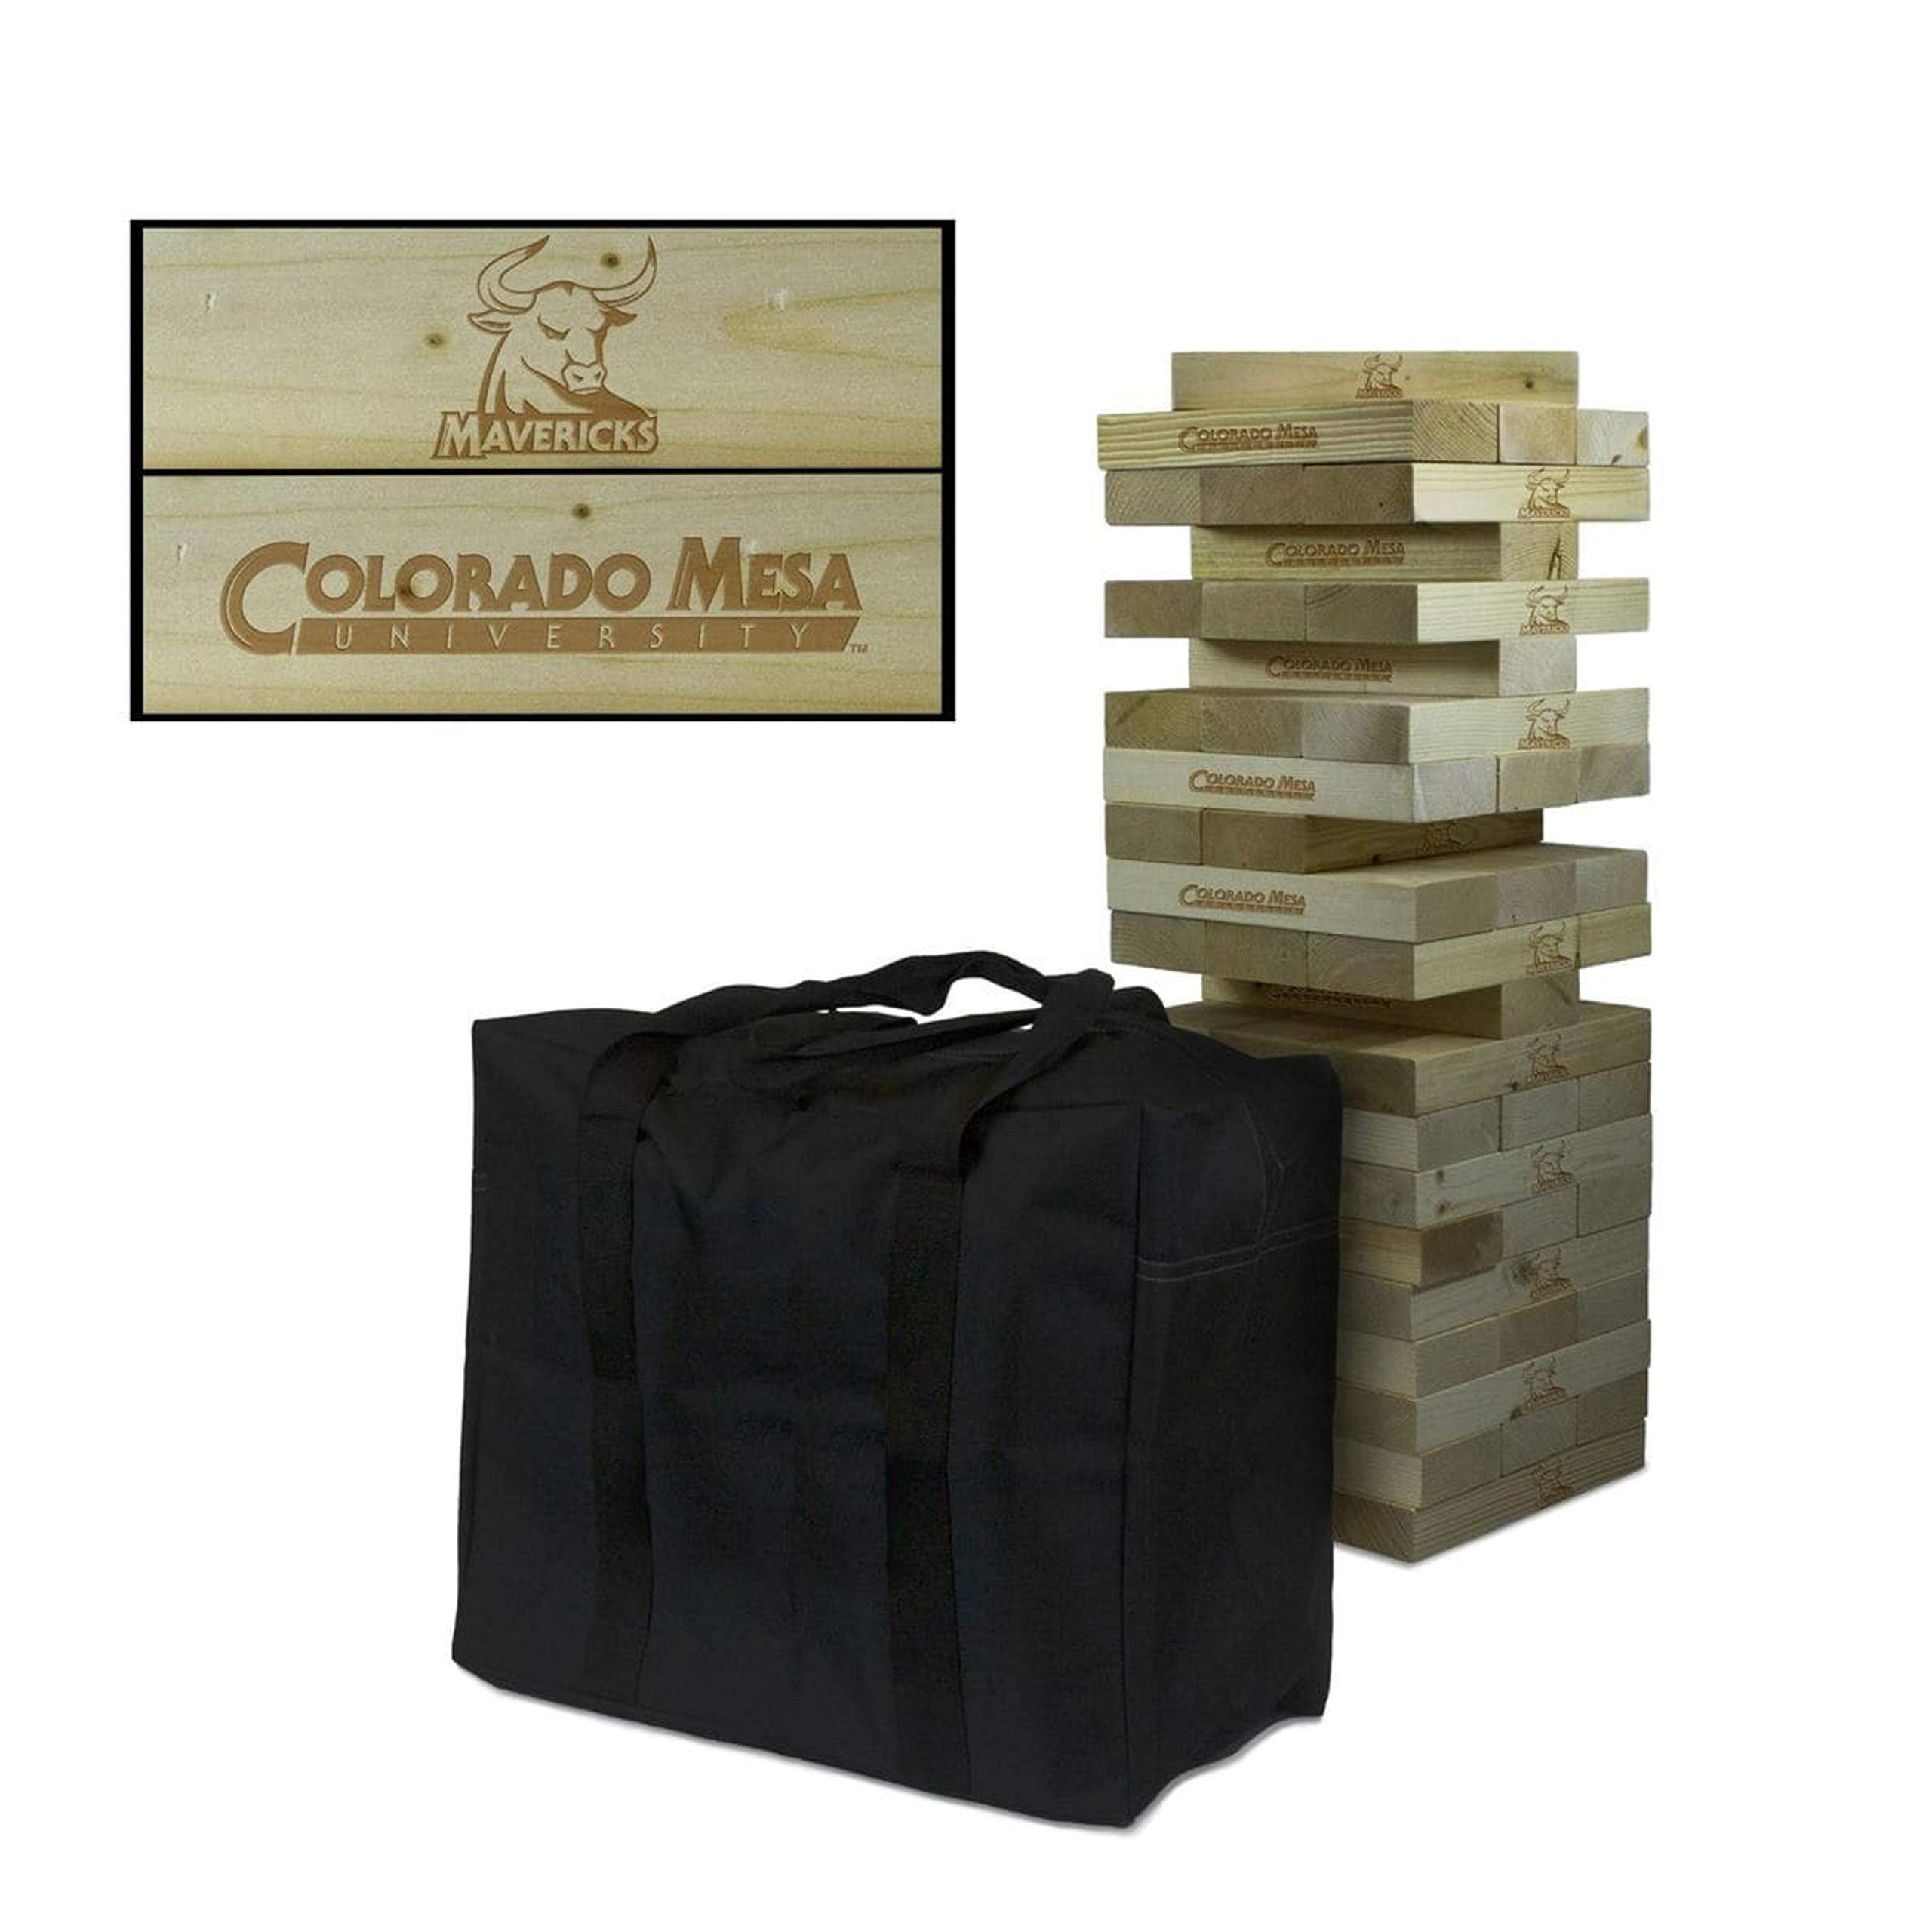 Victory Tailgate NCAA Giant Wooden Tumble Tower Game Set - Colorado Mesa University Mavericks by Victory Tailgate